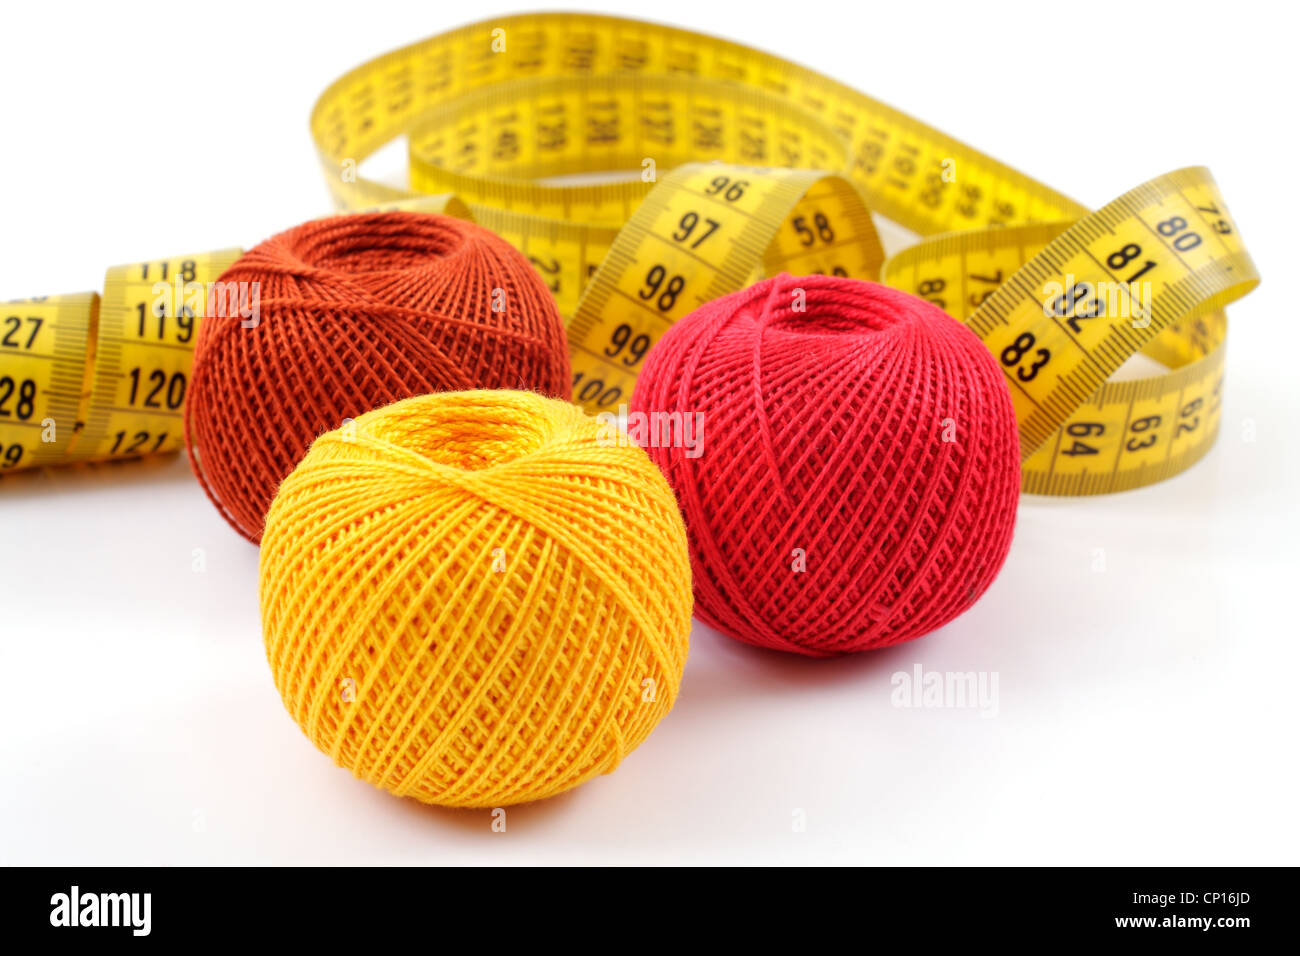 yarn and centimeter on a white background - Stock Image